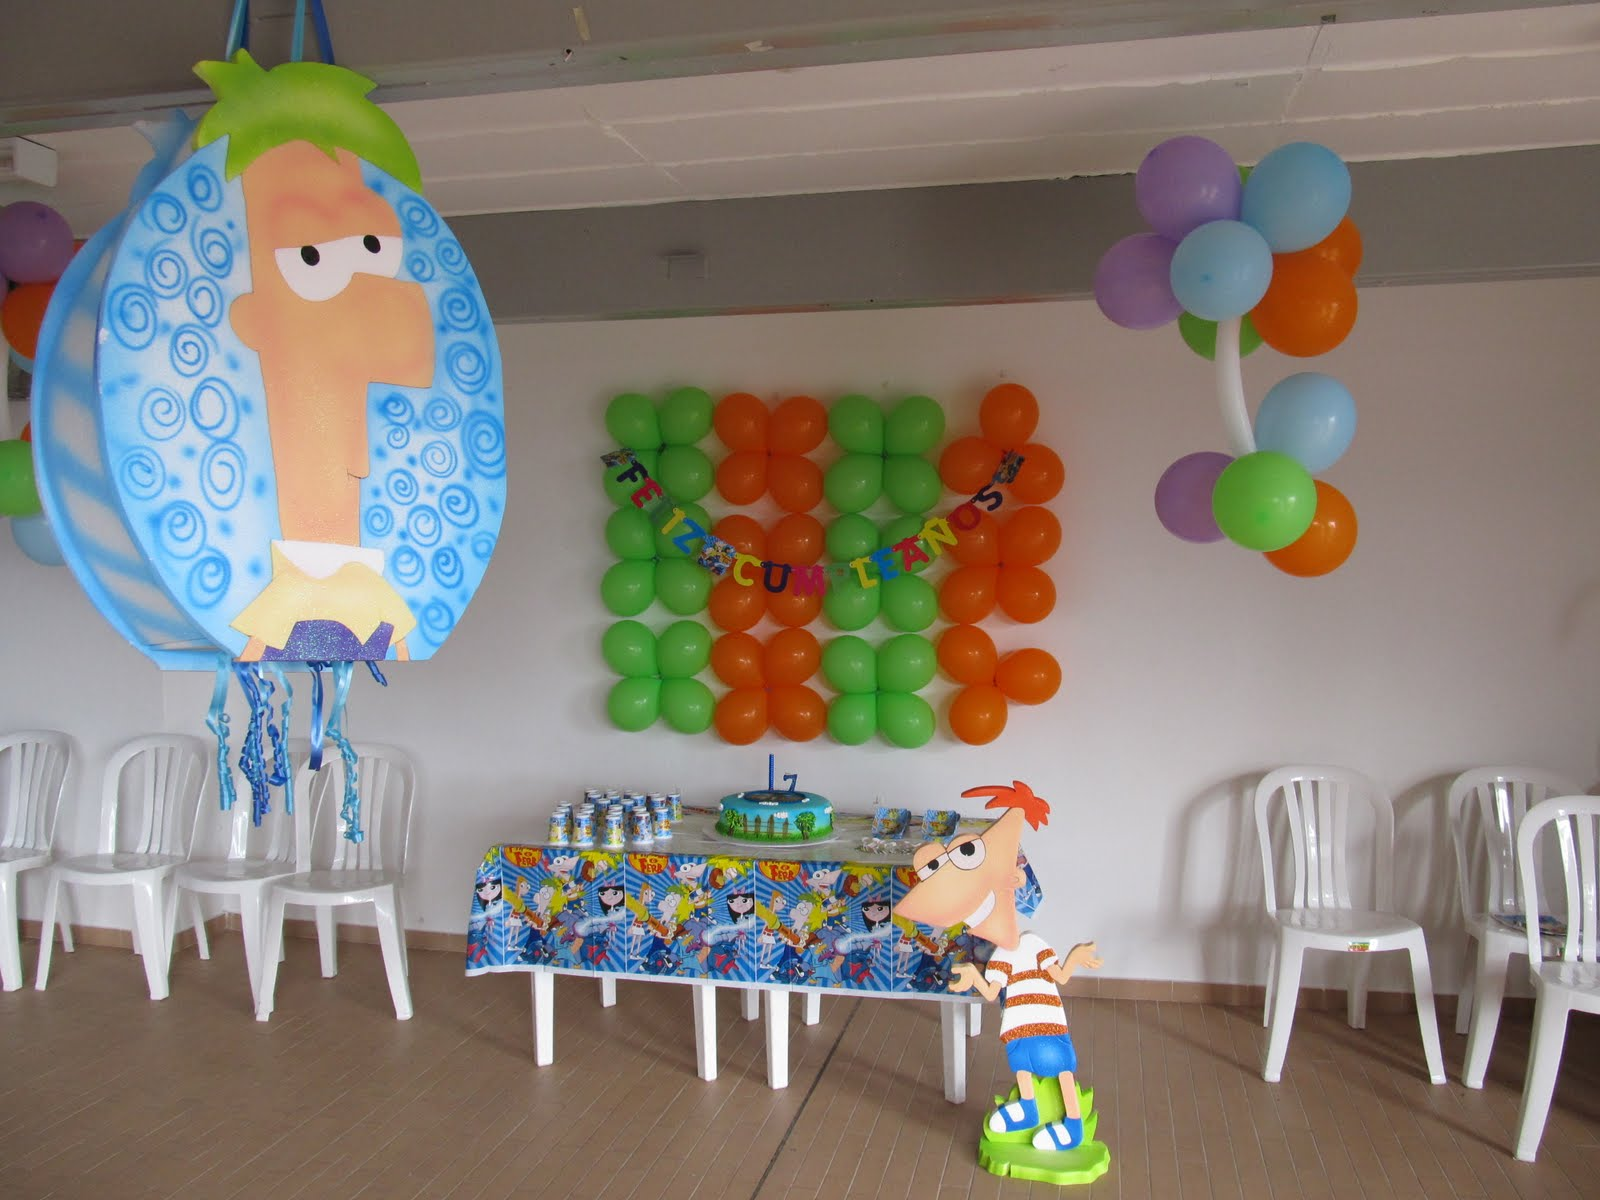 ... decoracion globos, recreacion castillos inflables pasabocas chiquiteca